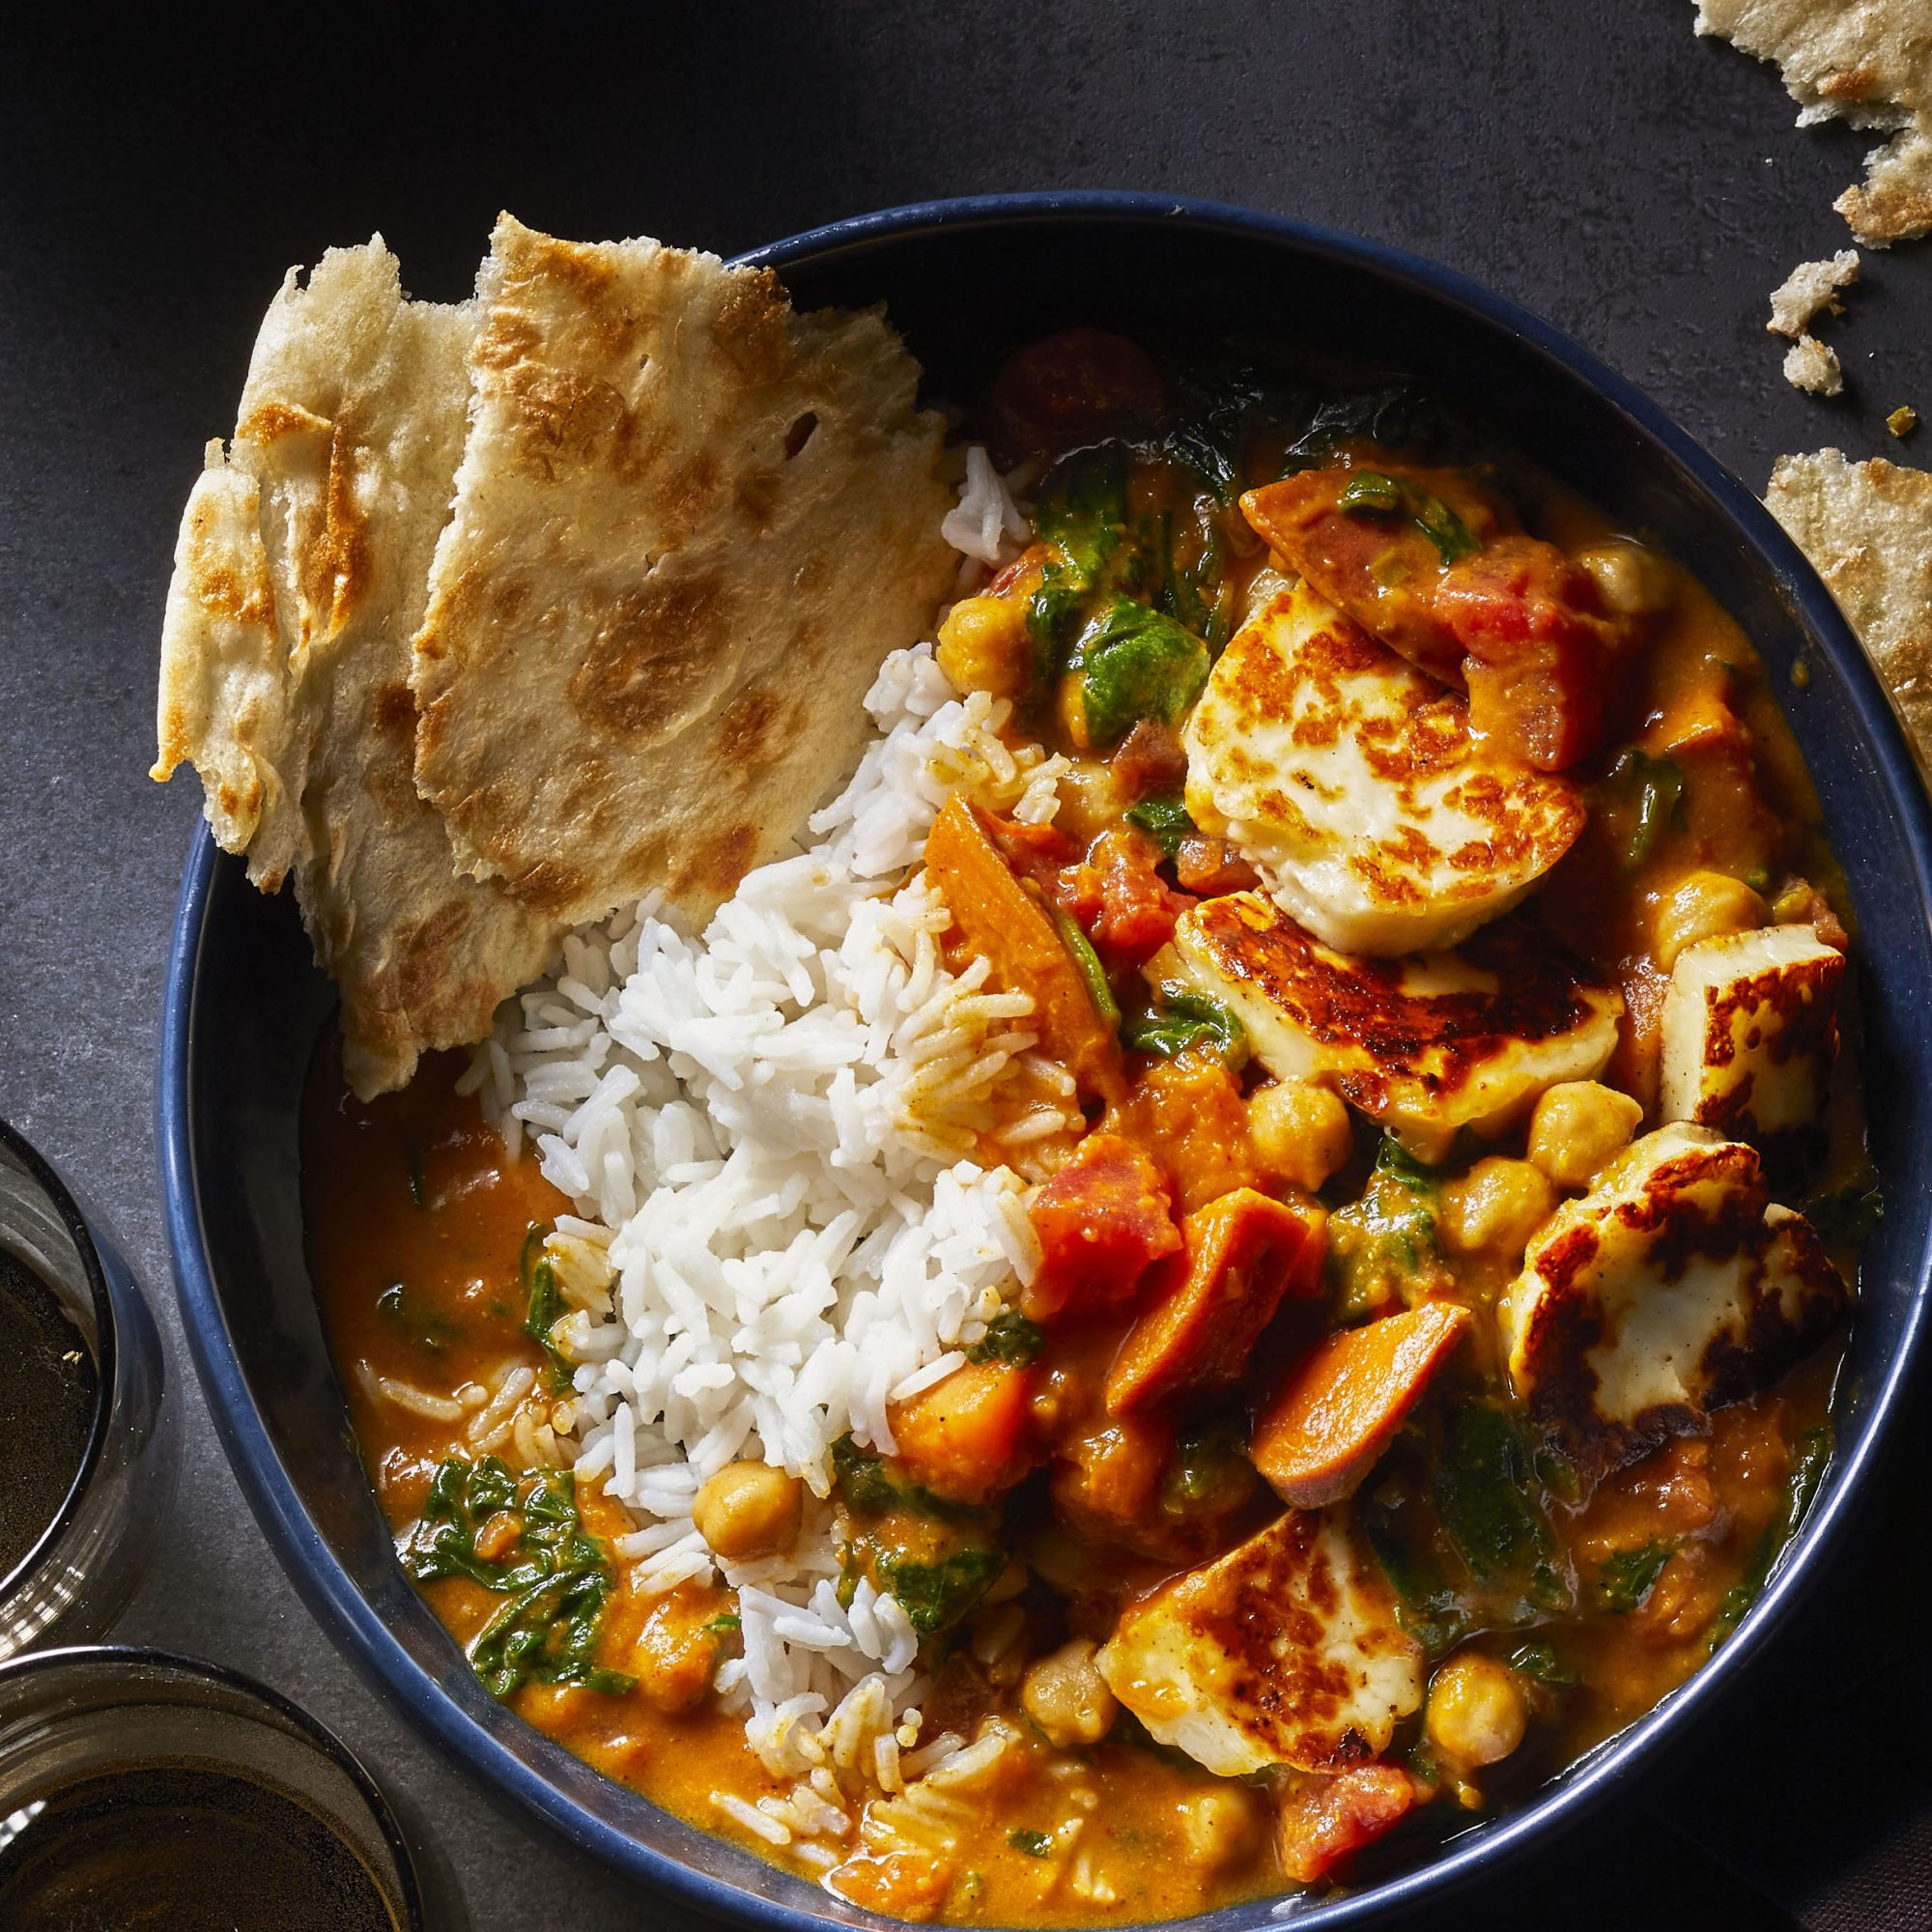 Sweet Potato, Spinach, and Halloumi Curry in a dark bowl